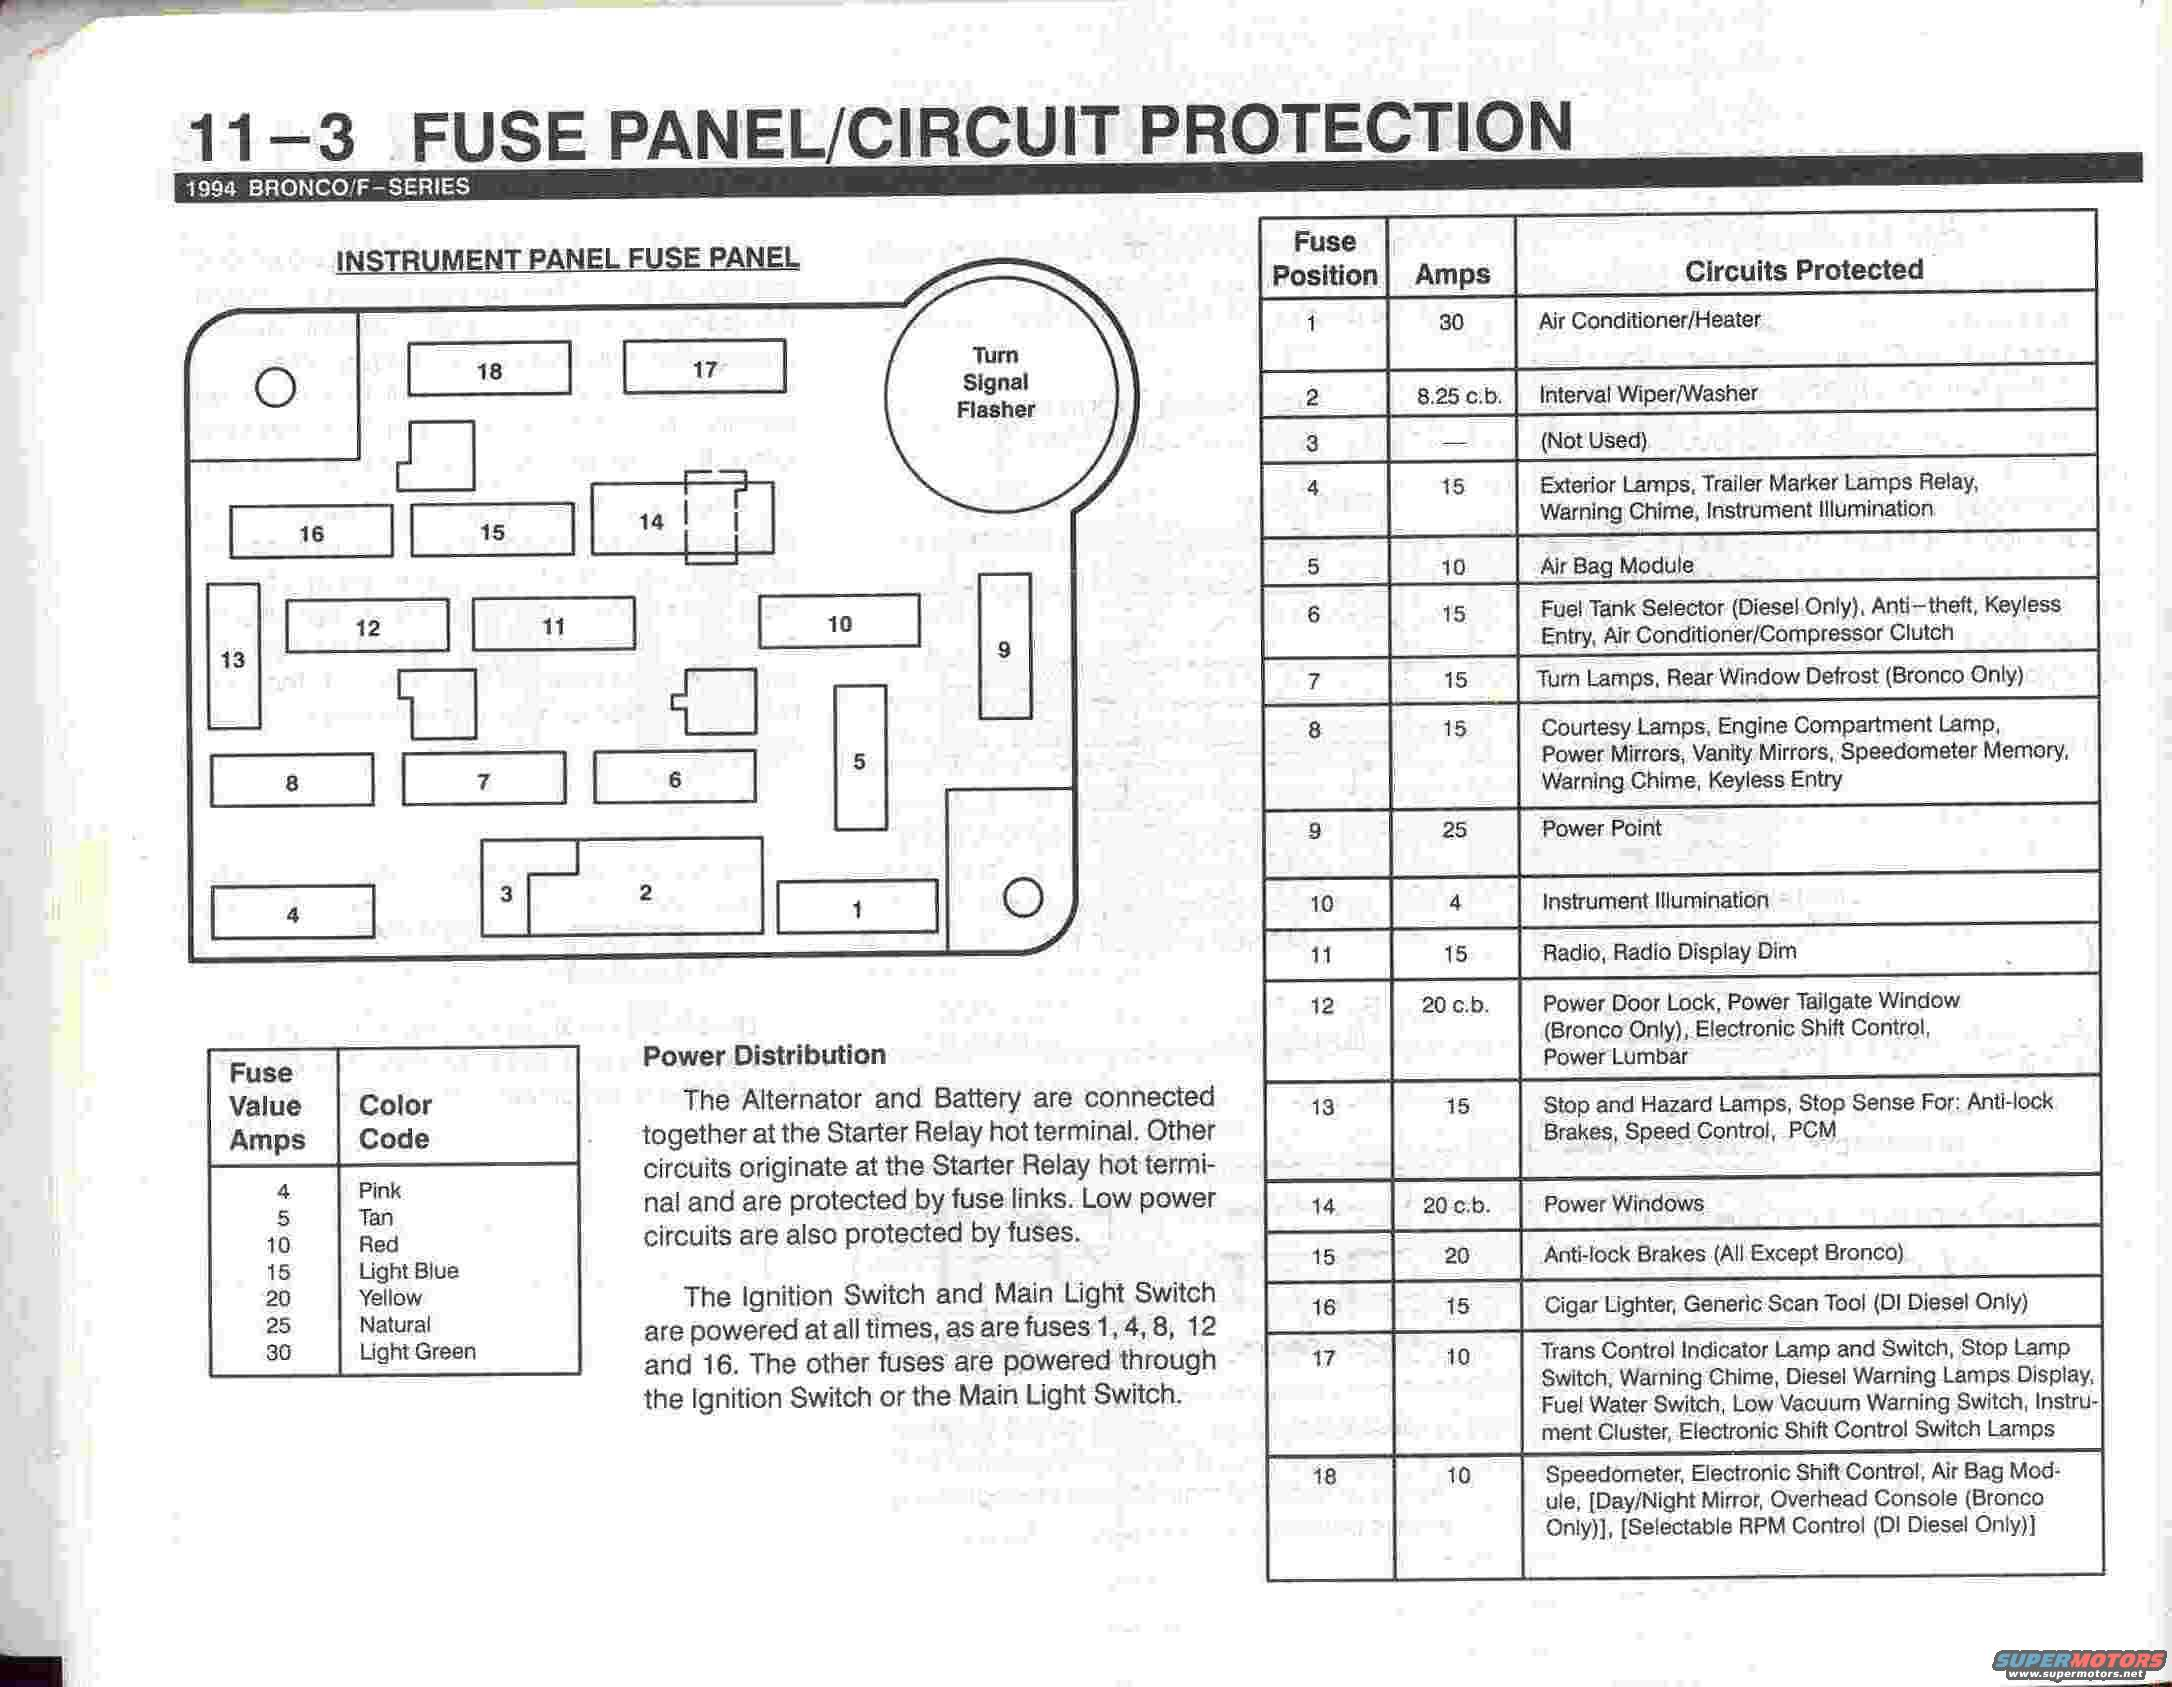 1994 Ford F250 Fuse Box Diagram | Wiring Diagram  F Fuse Box on 94 corvette fuse box, 94 bronco fuse box, 1993 f150 fuse box, 94 silverado fuse box, 94 civic fuse box, 94 explorer fuse box, 94 grand marquis fuse box, 94 accord fuse box, 93 f150 fuse box, 94 taurus fuse box, 94 club wagon fuse box, ford f150 fuse box, 94 corolla fuse box, 94 ranger fuse box, 1999 f150 fuse box, 94 mustang fuse box, 94 dodge fuse box, 94 e250 fuse box, 94 windstar fuse box, 94 sable fuse box,